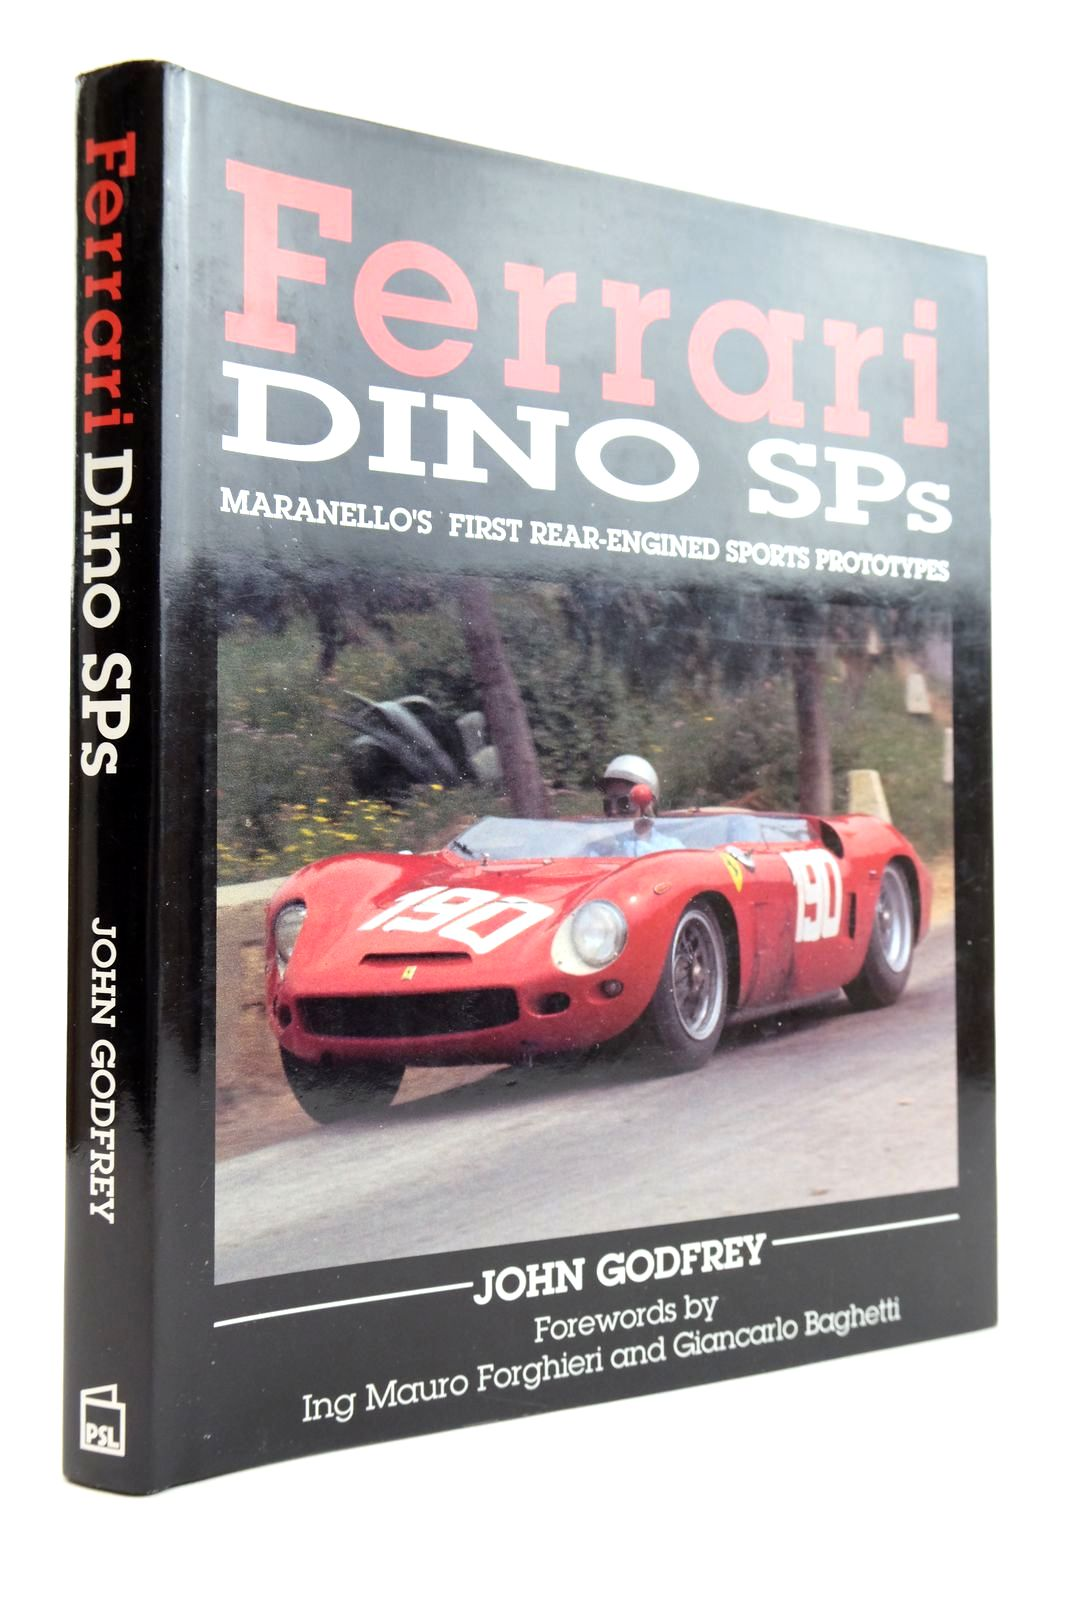 Photo of FERRARI DINO SPS written by Godfrey, John published by Patrick Stephens Limited (STOCK CODE: 2132822)  for sale by Stella & Rose's Books